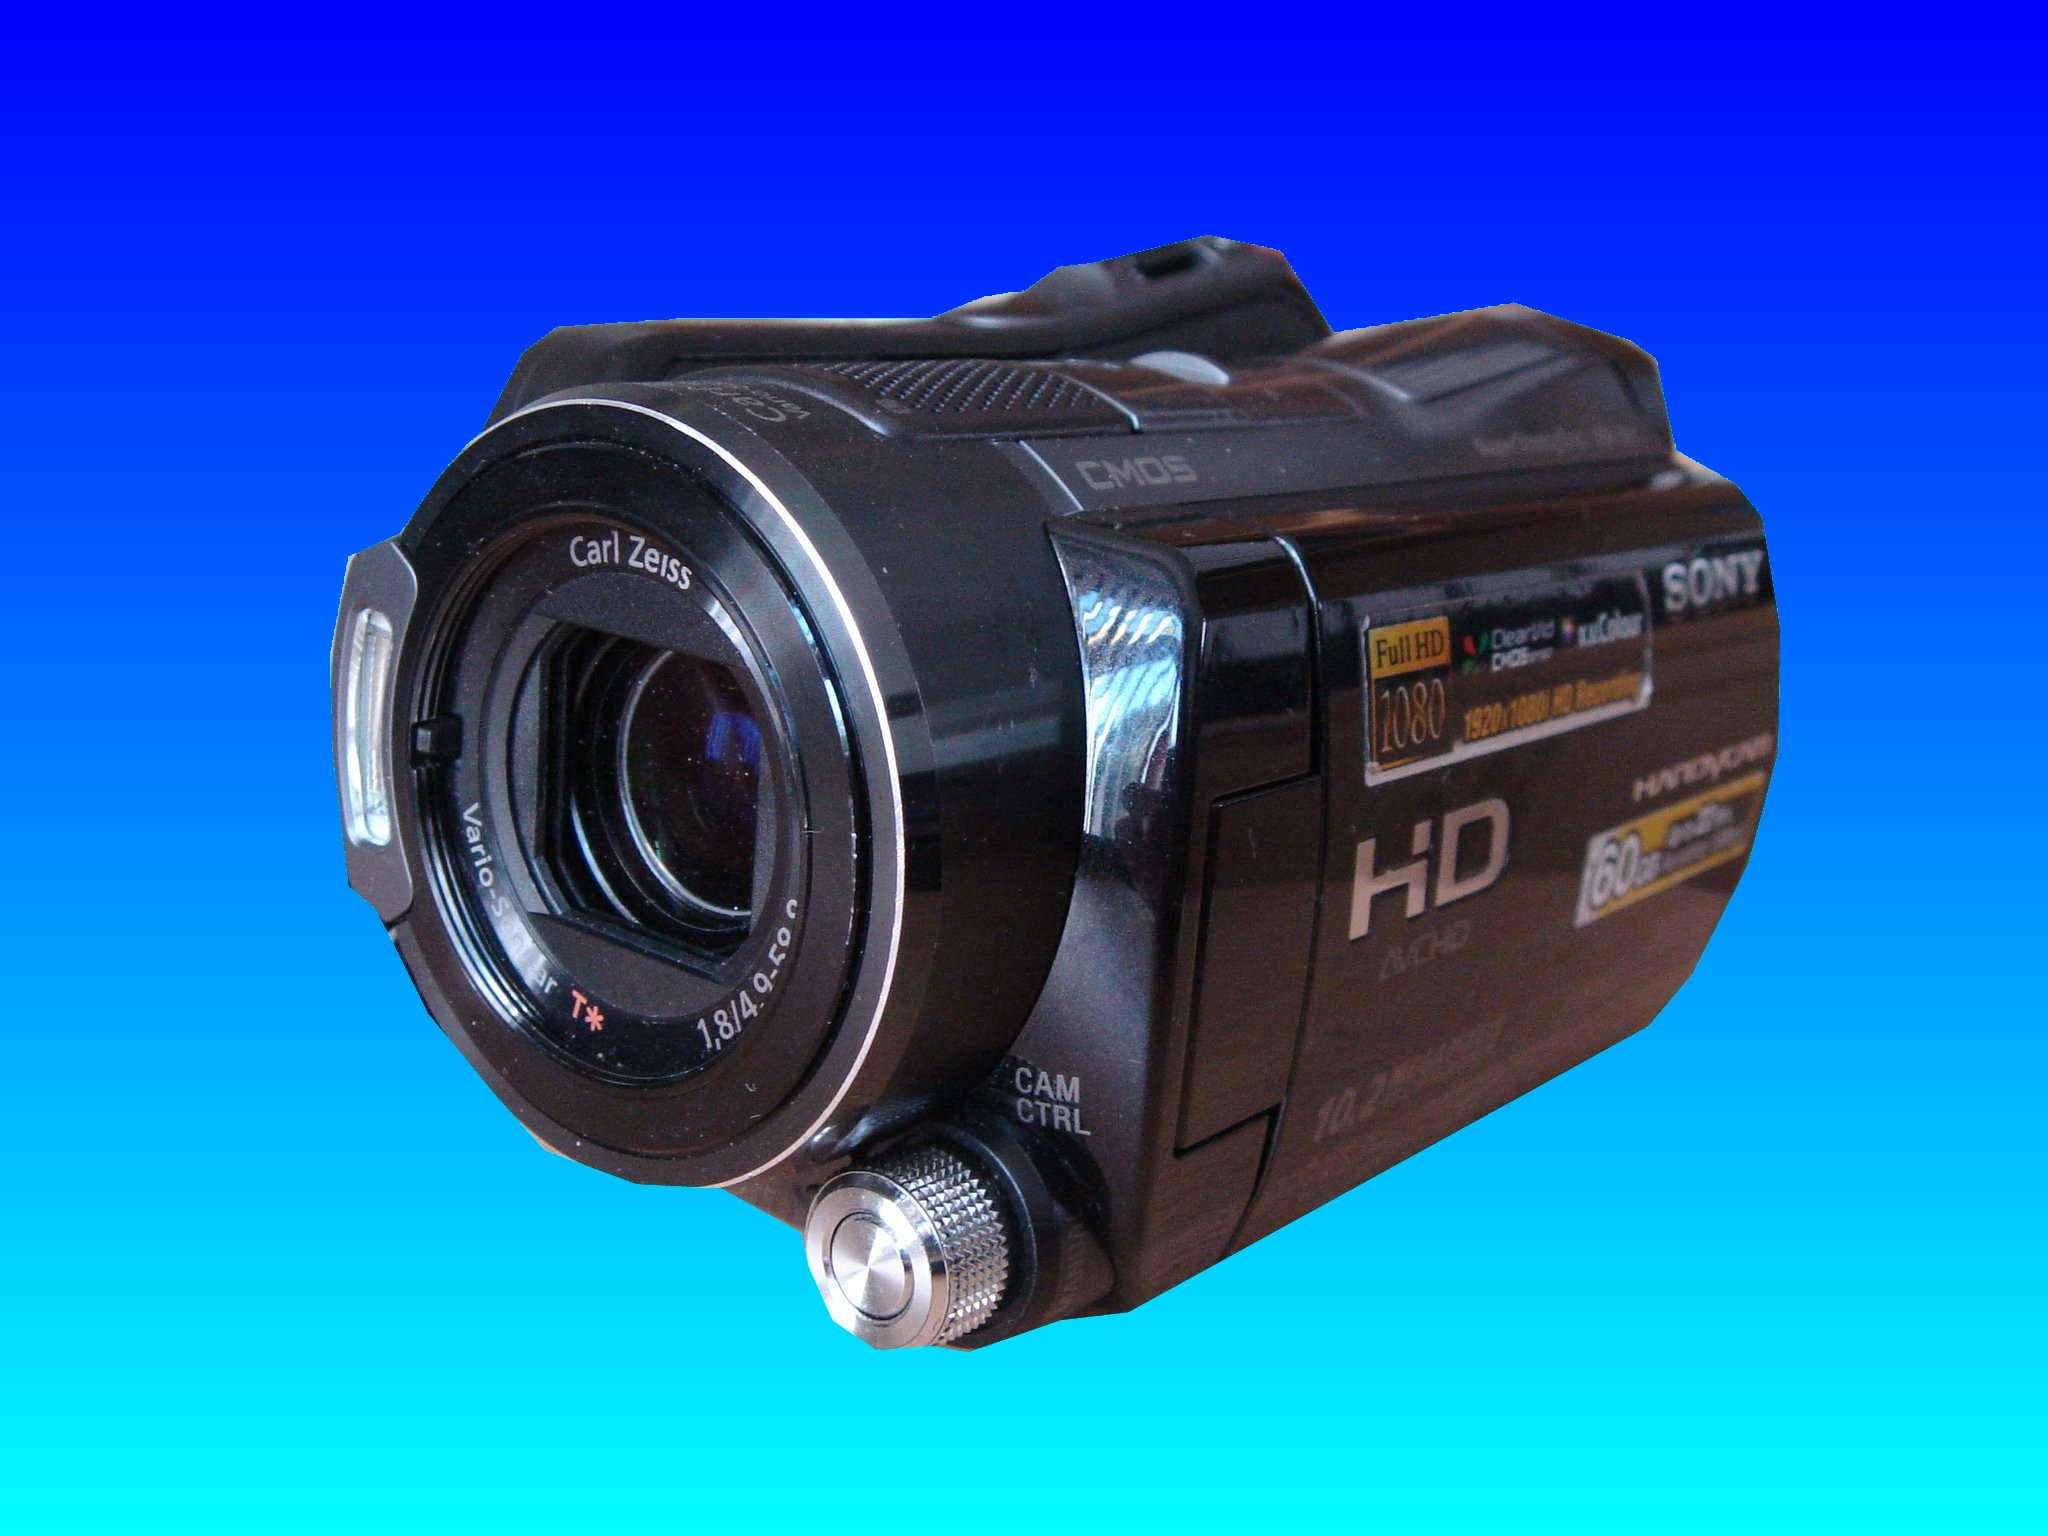 A Sony handycam that records HD video in AVCHD format that needed the home movie files restoring to the original sequence of clips.